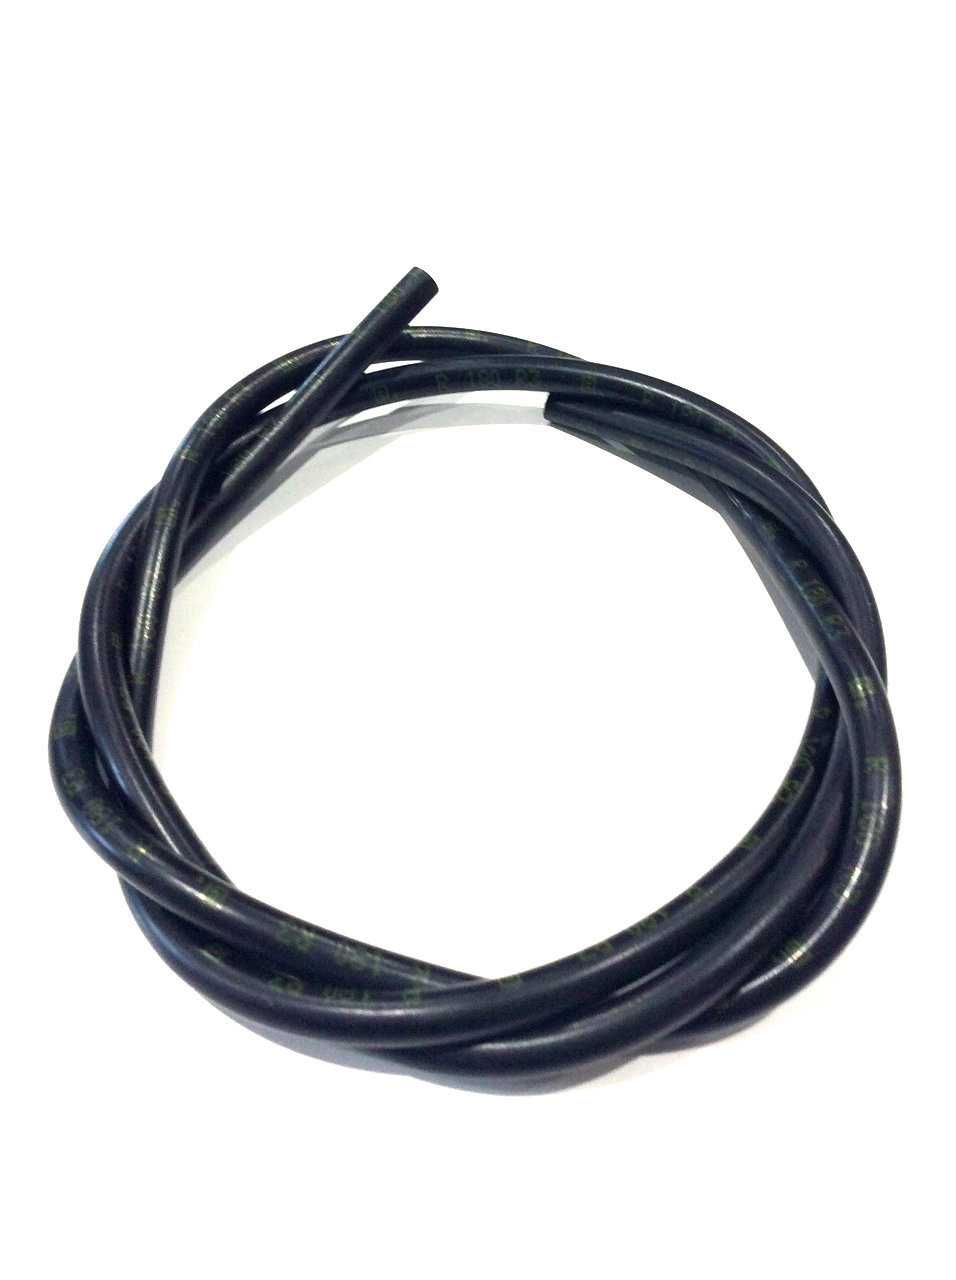 medium resolution of fuel hose per mtr for stihl ts400 0000 930 2803